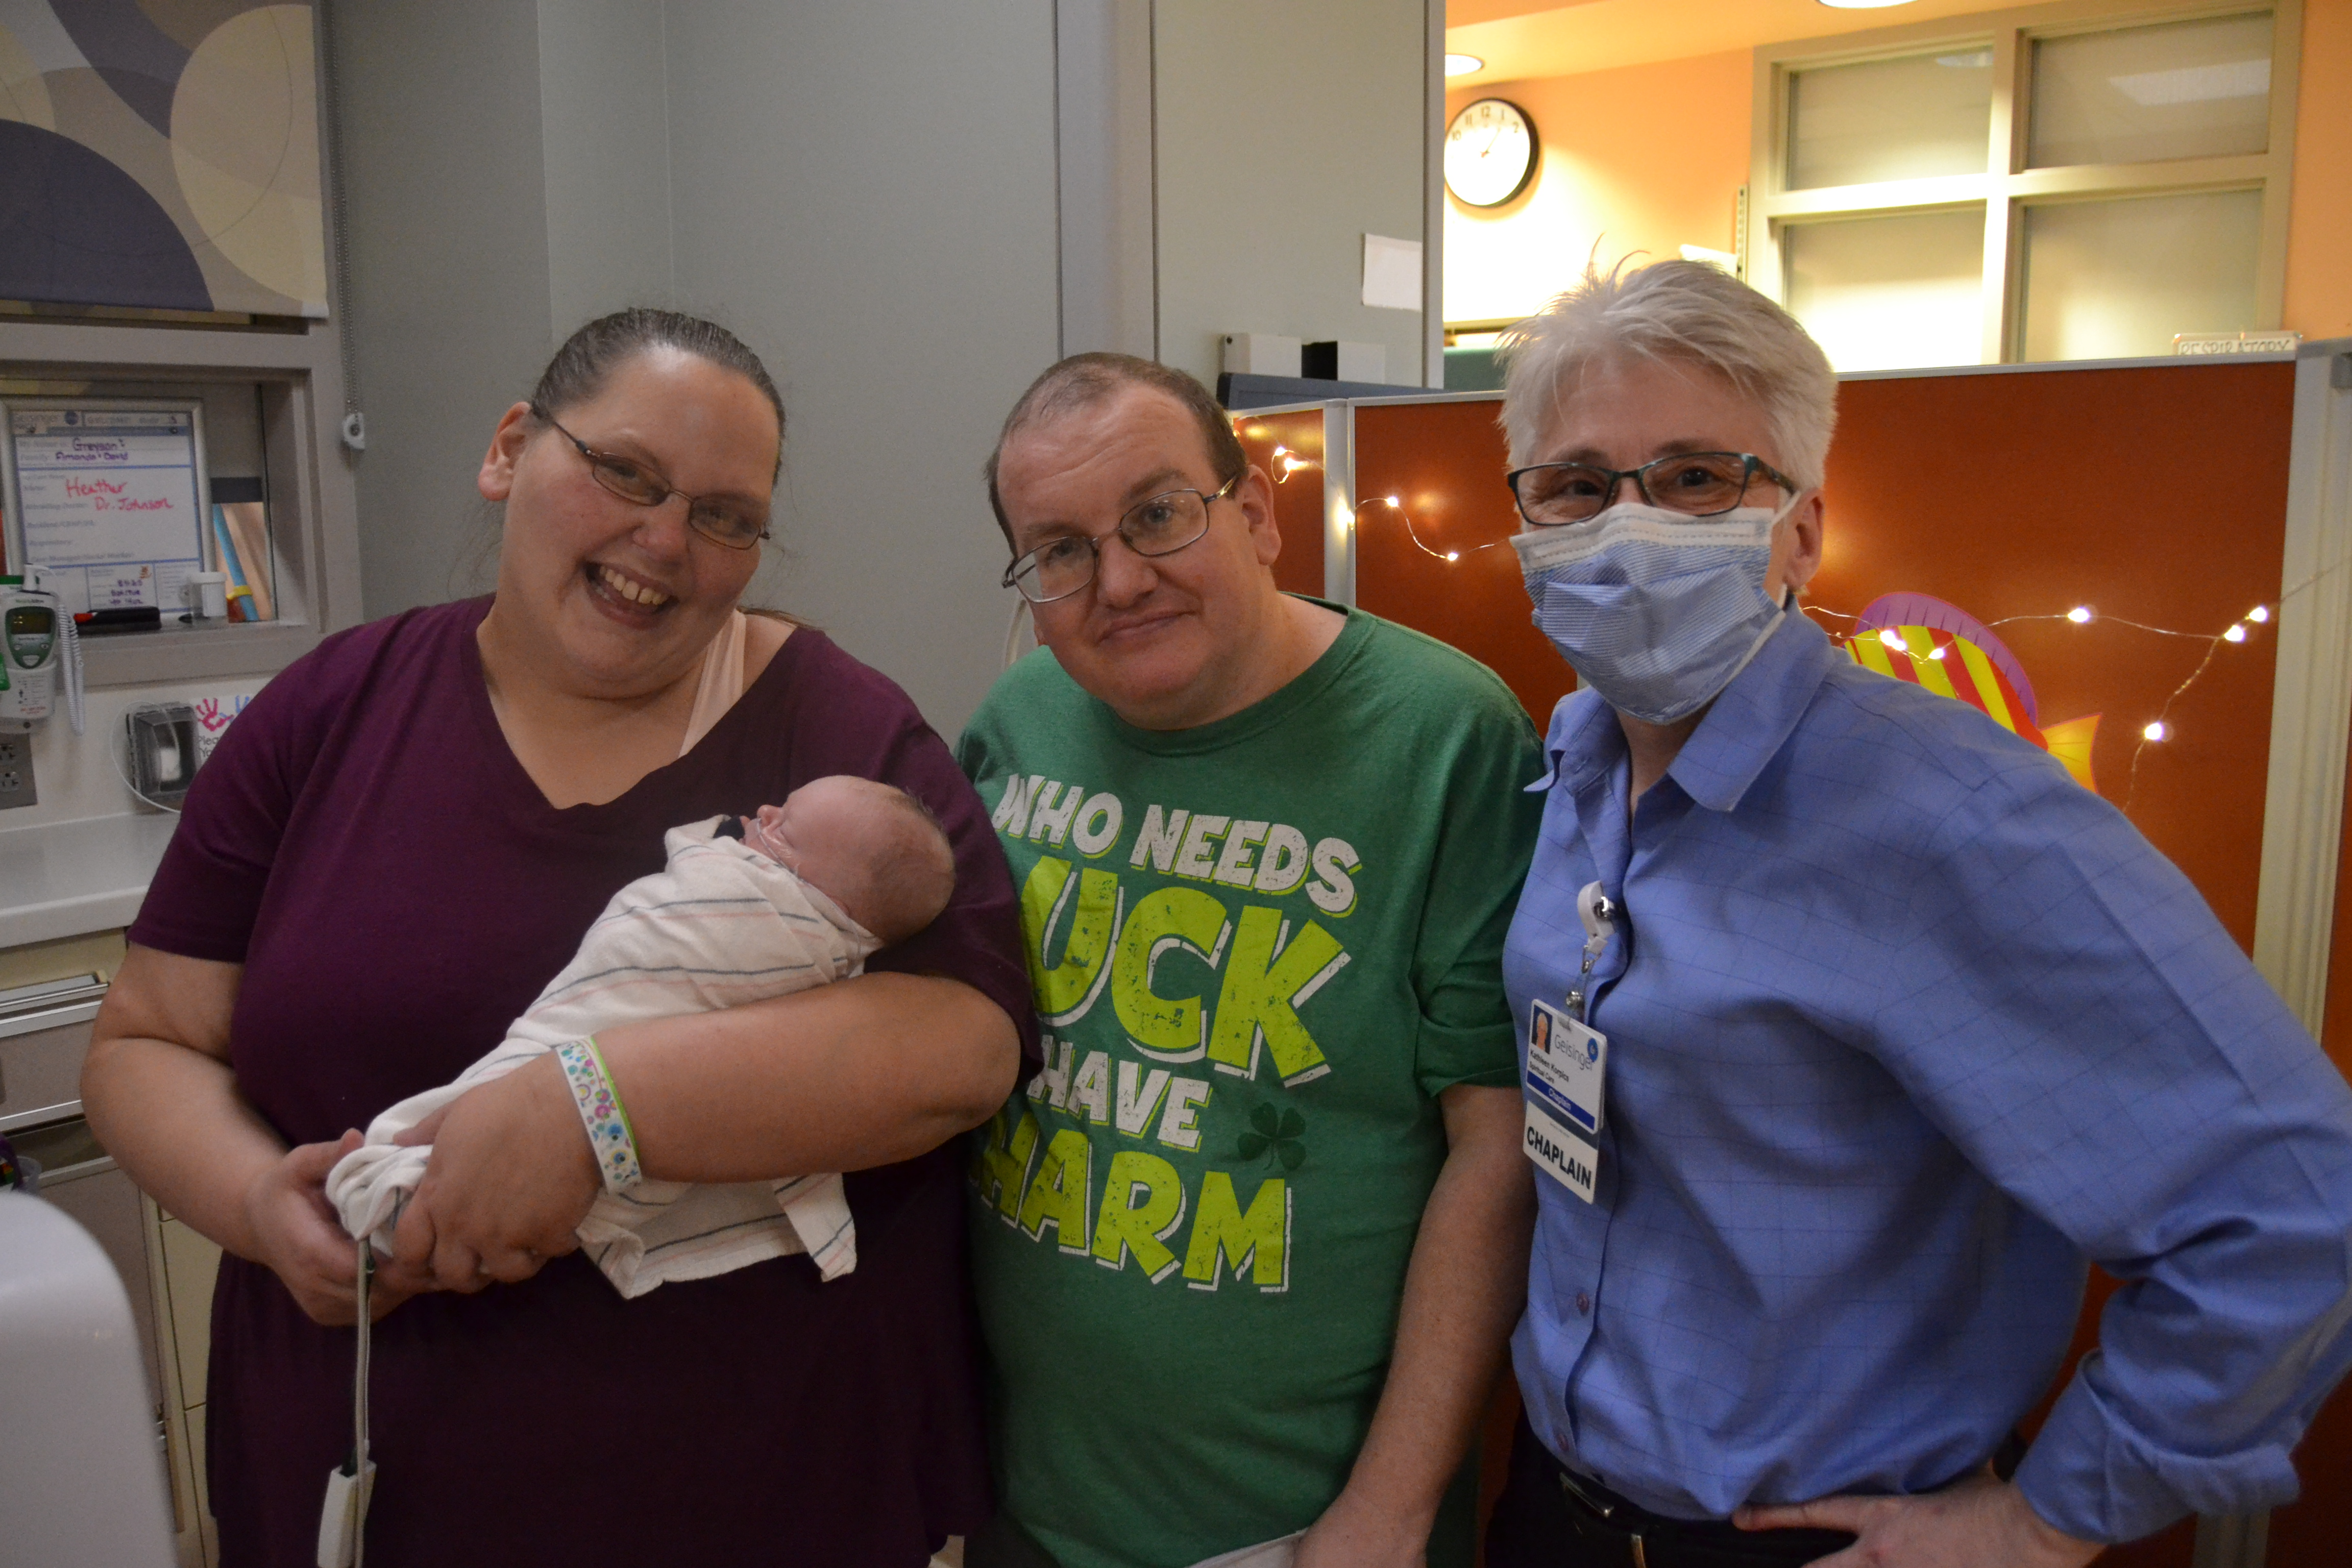 A baptism in the NICU